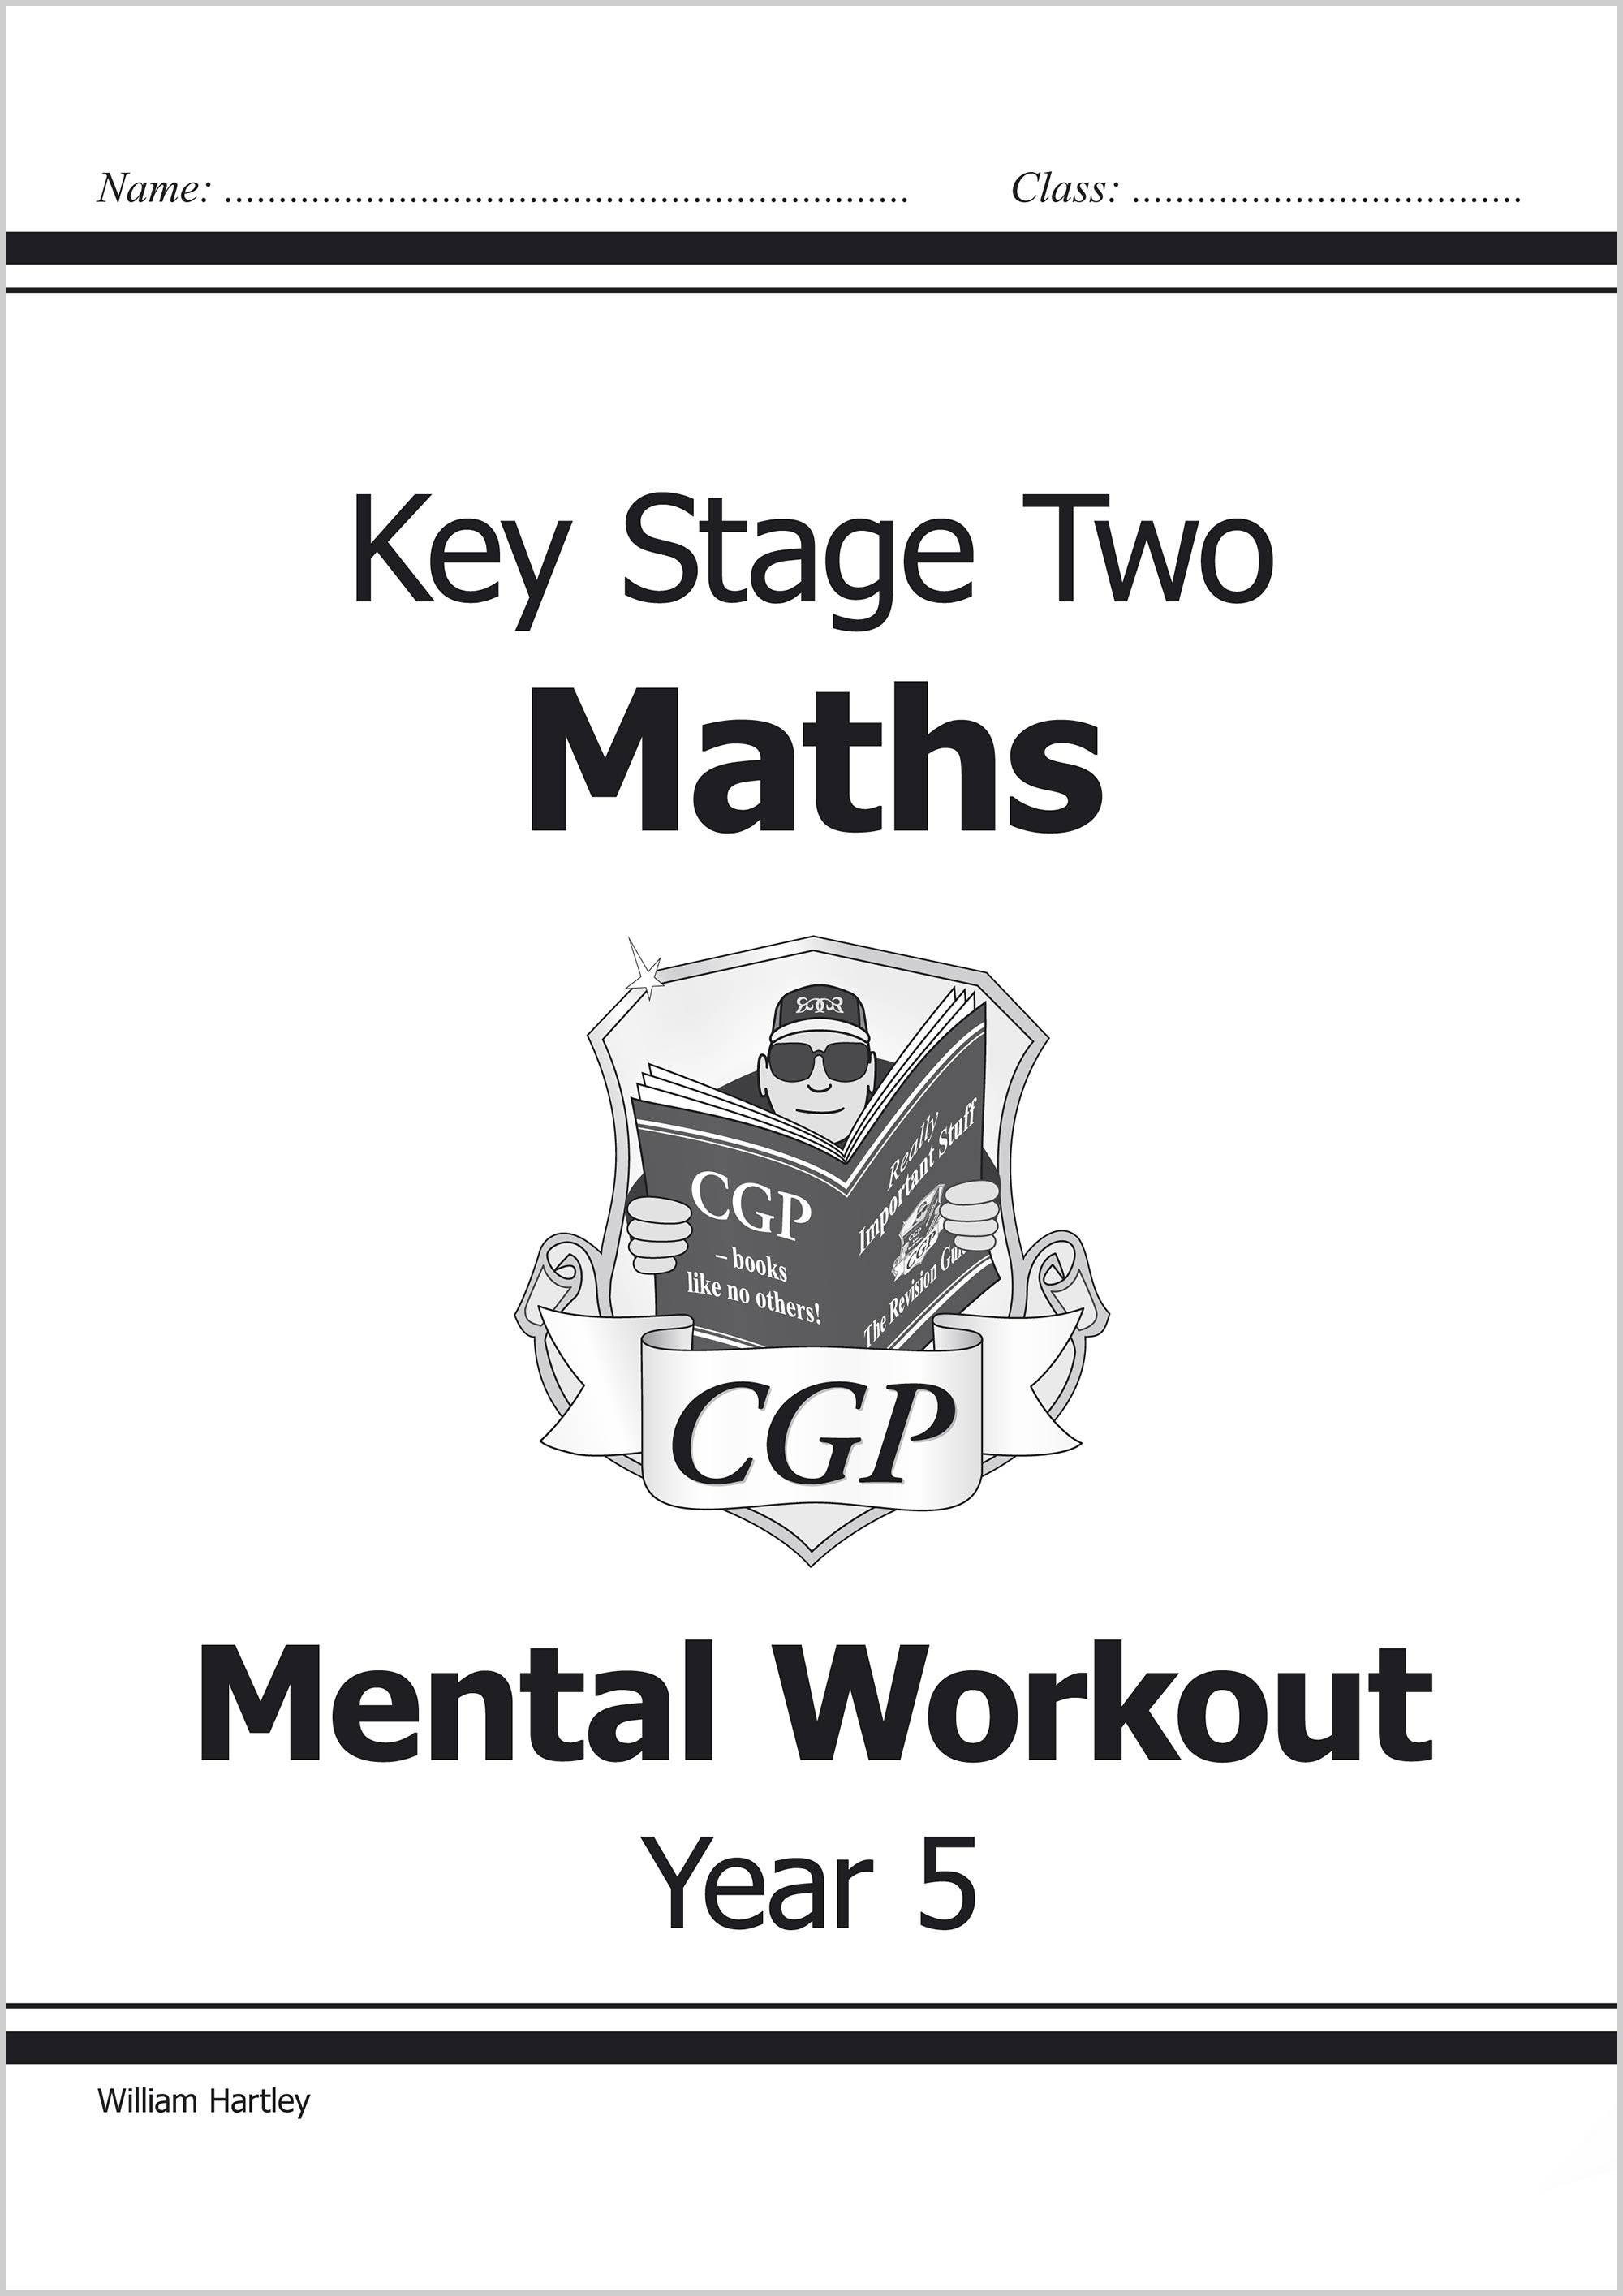 M5MA22 - KS2 Mental Maths Workout - Year 5